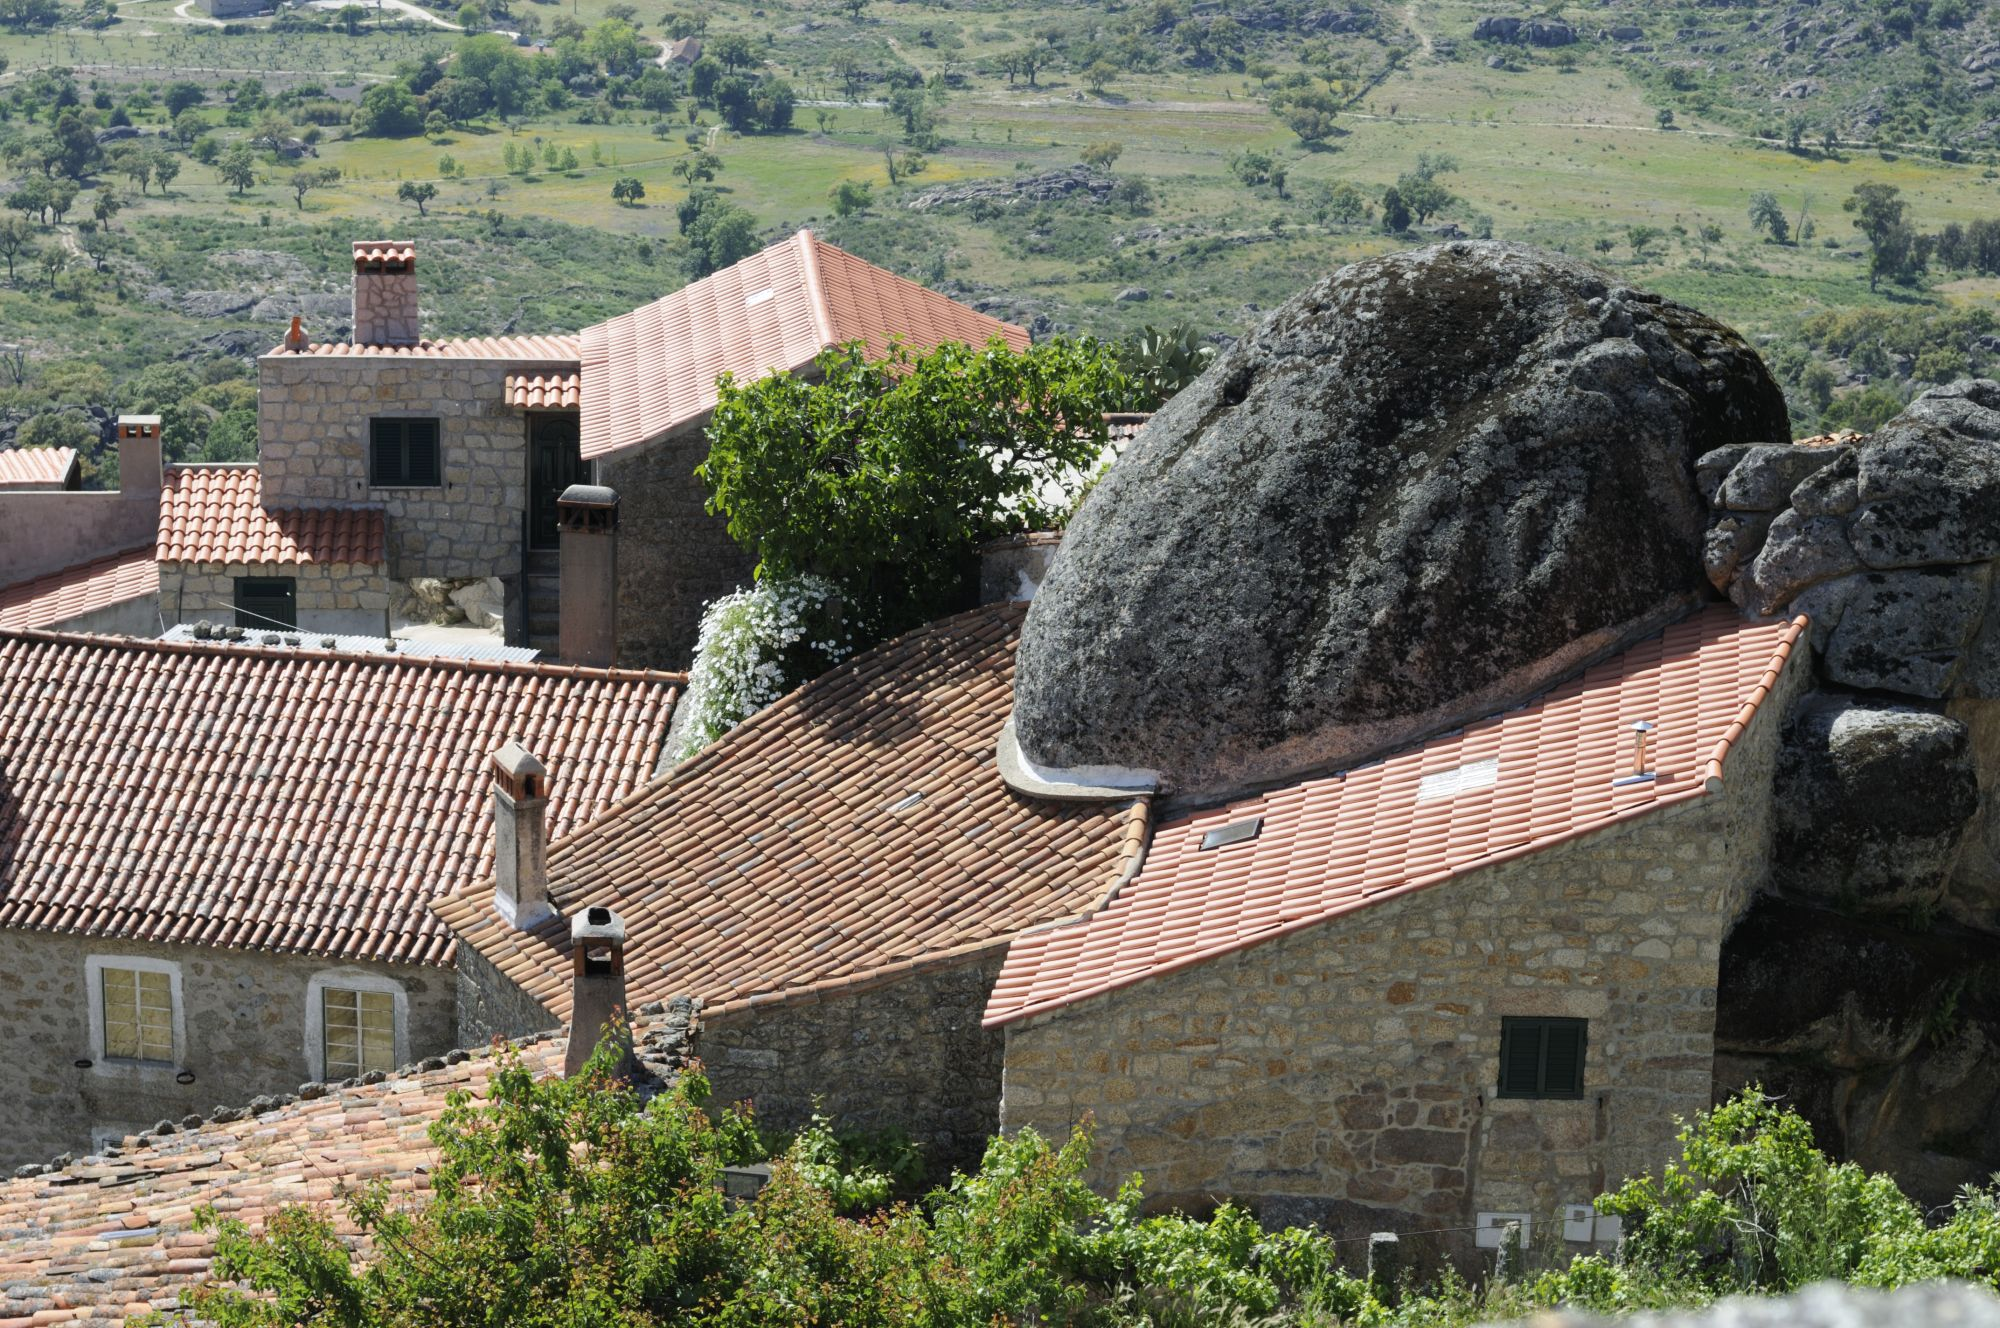 Monsanto, the village built from granite boulders